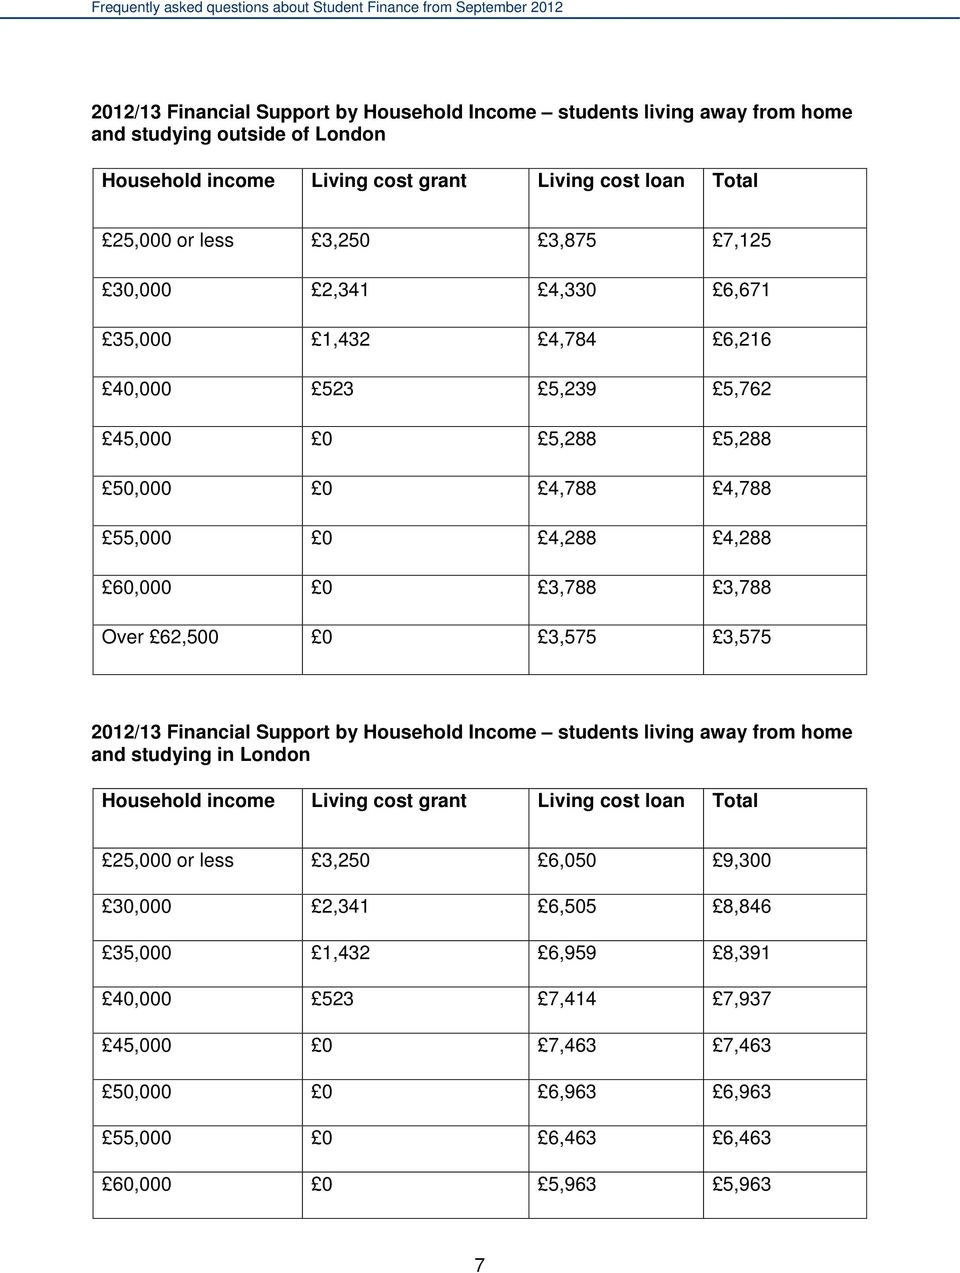 62,500 0 3,575 3,575 2012/13 Financial Support by Household Income students living away from home and studying in London Household income Living cost grant Living cost loan Total